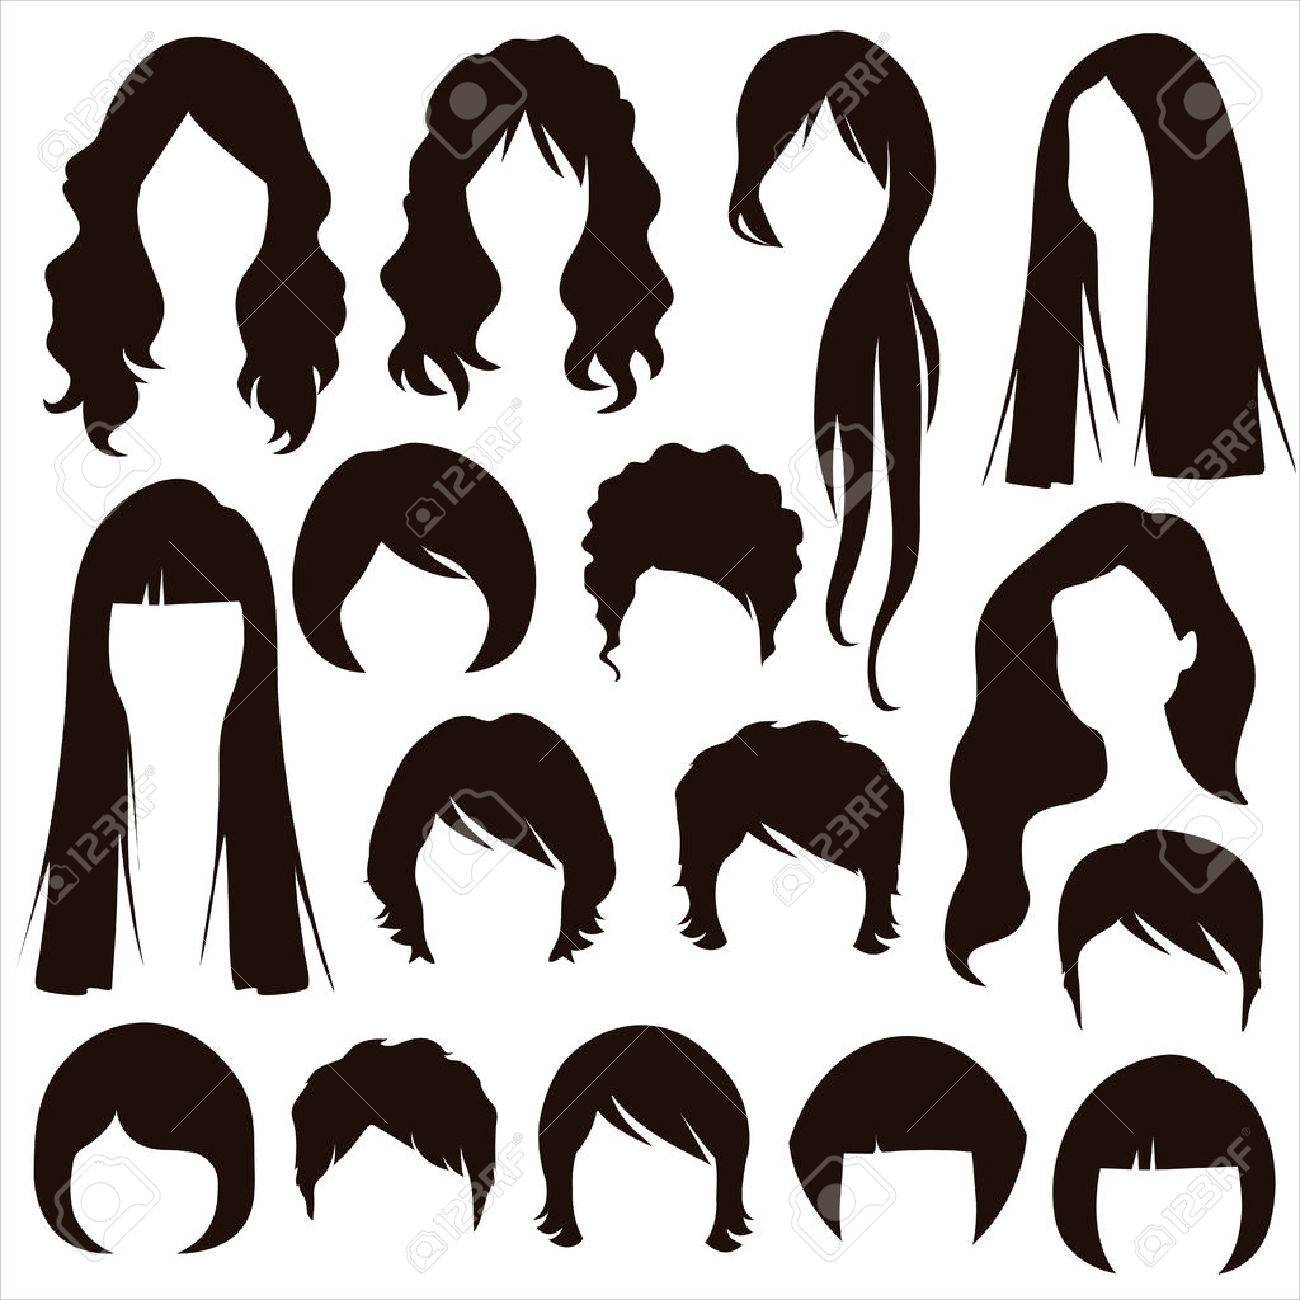 Hair Silhouette Images.